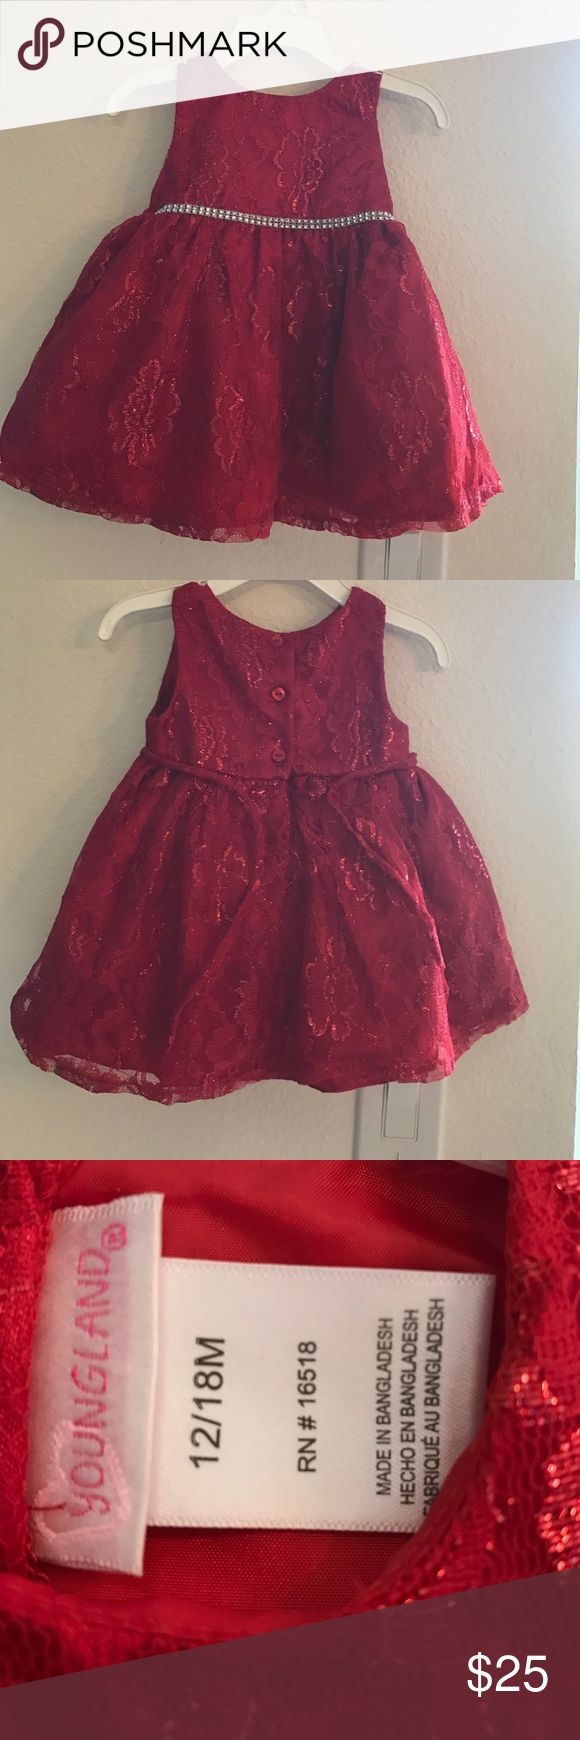 Youngland baby girl holiday dress Size 12 to 18 months. Cute red sparkly lace dress. Petticoat for volume on inside. Worn once for less than a hour. Smoke free home. I do have pets. No stains, rips or tares. Youngland Dresses Formal